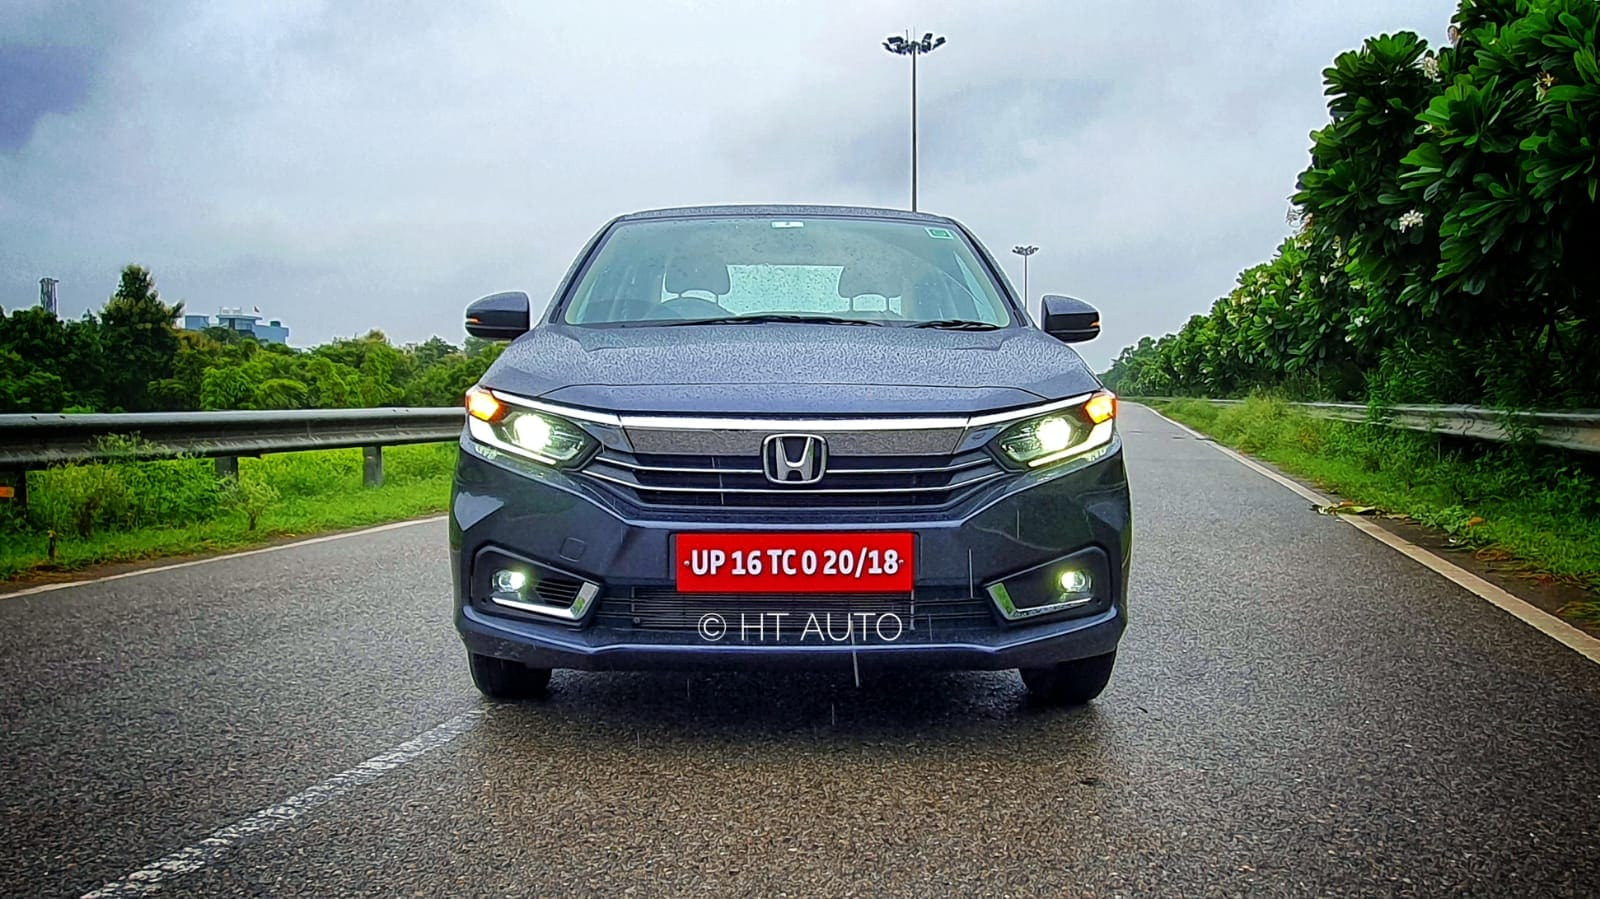 The most significant of all the visual tweaks on the new Amaze is the use of a new front main grille which is sleeker and uses fine chrome molding lines on the lower side. (HT Auto/Sabyasachi Dasgupta)